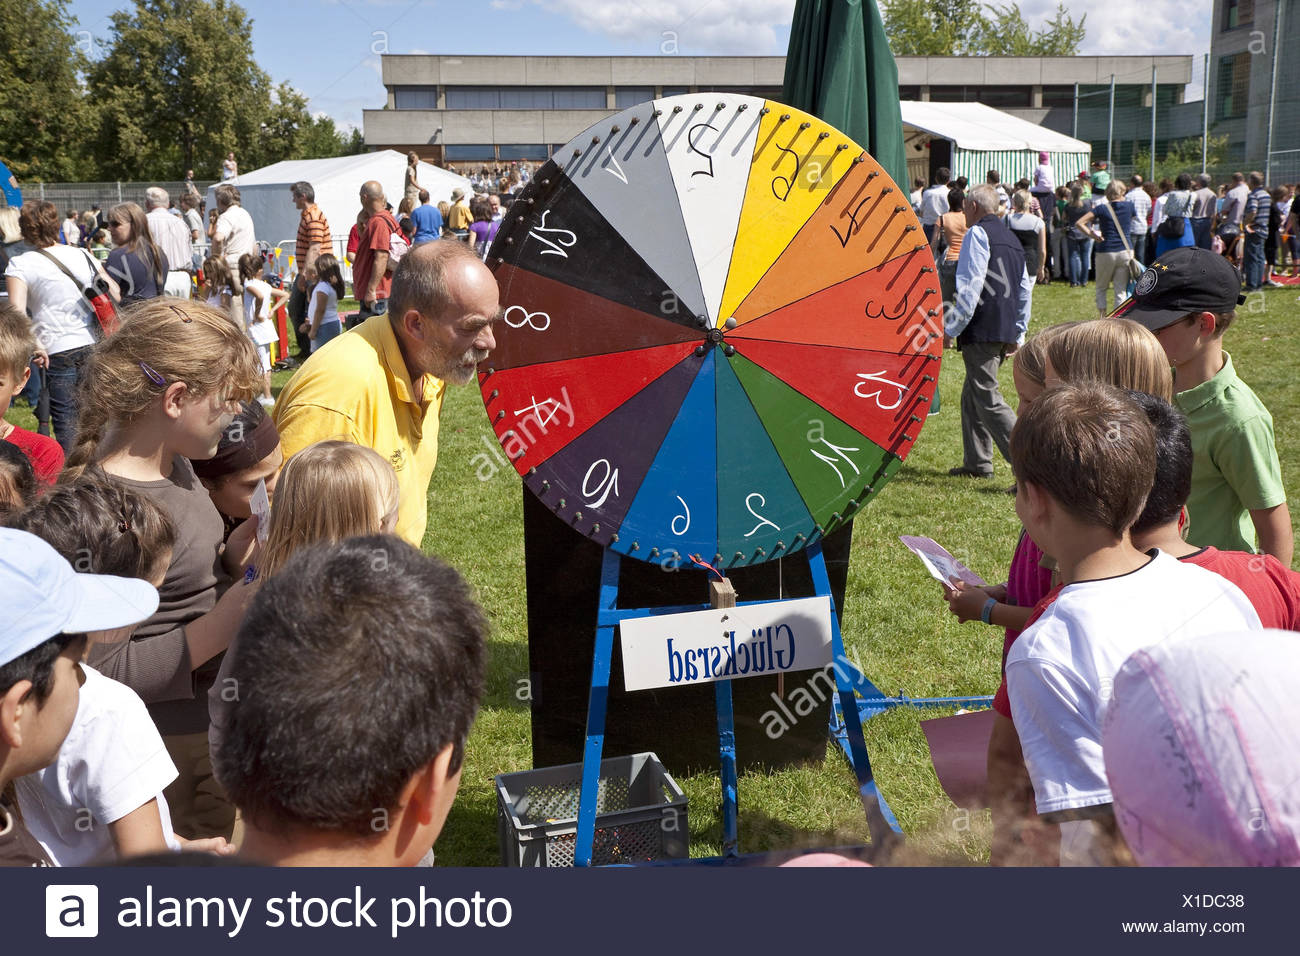 Children, wheel of fortune, child feast, - Stock Image